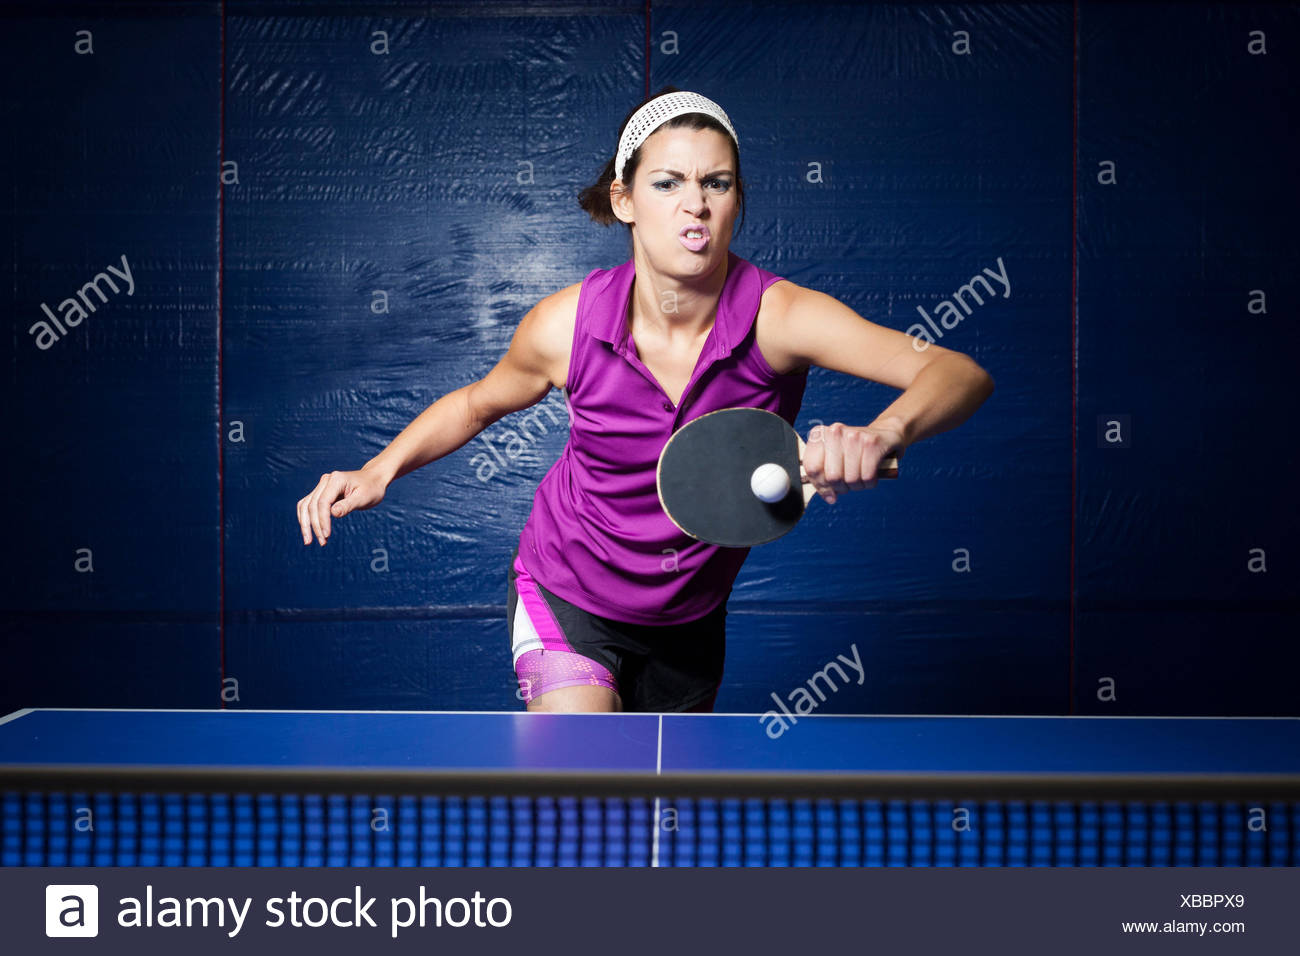 Table tennis player training - Stock Image